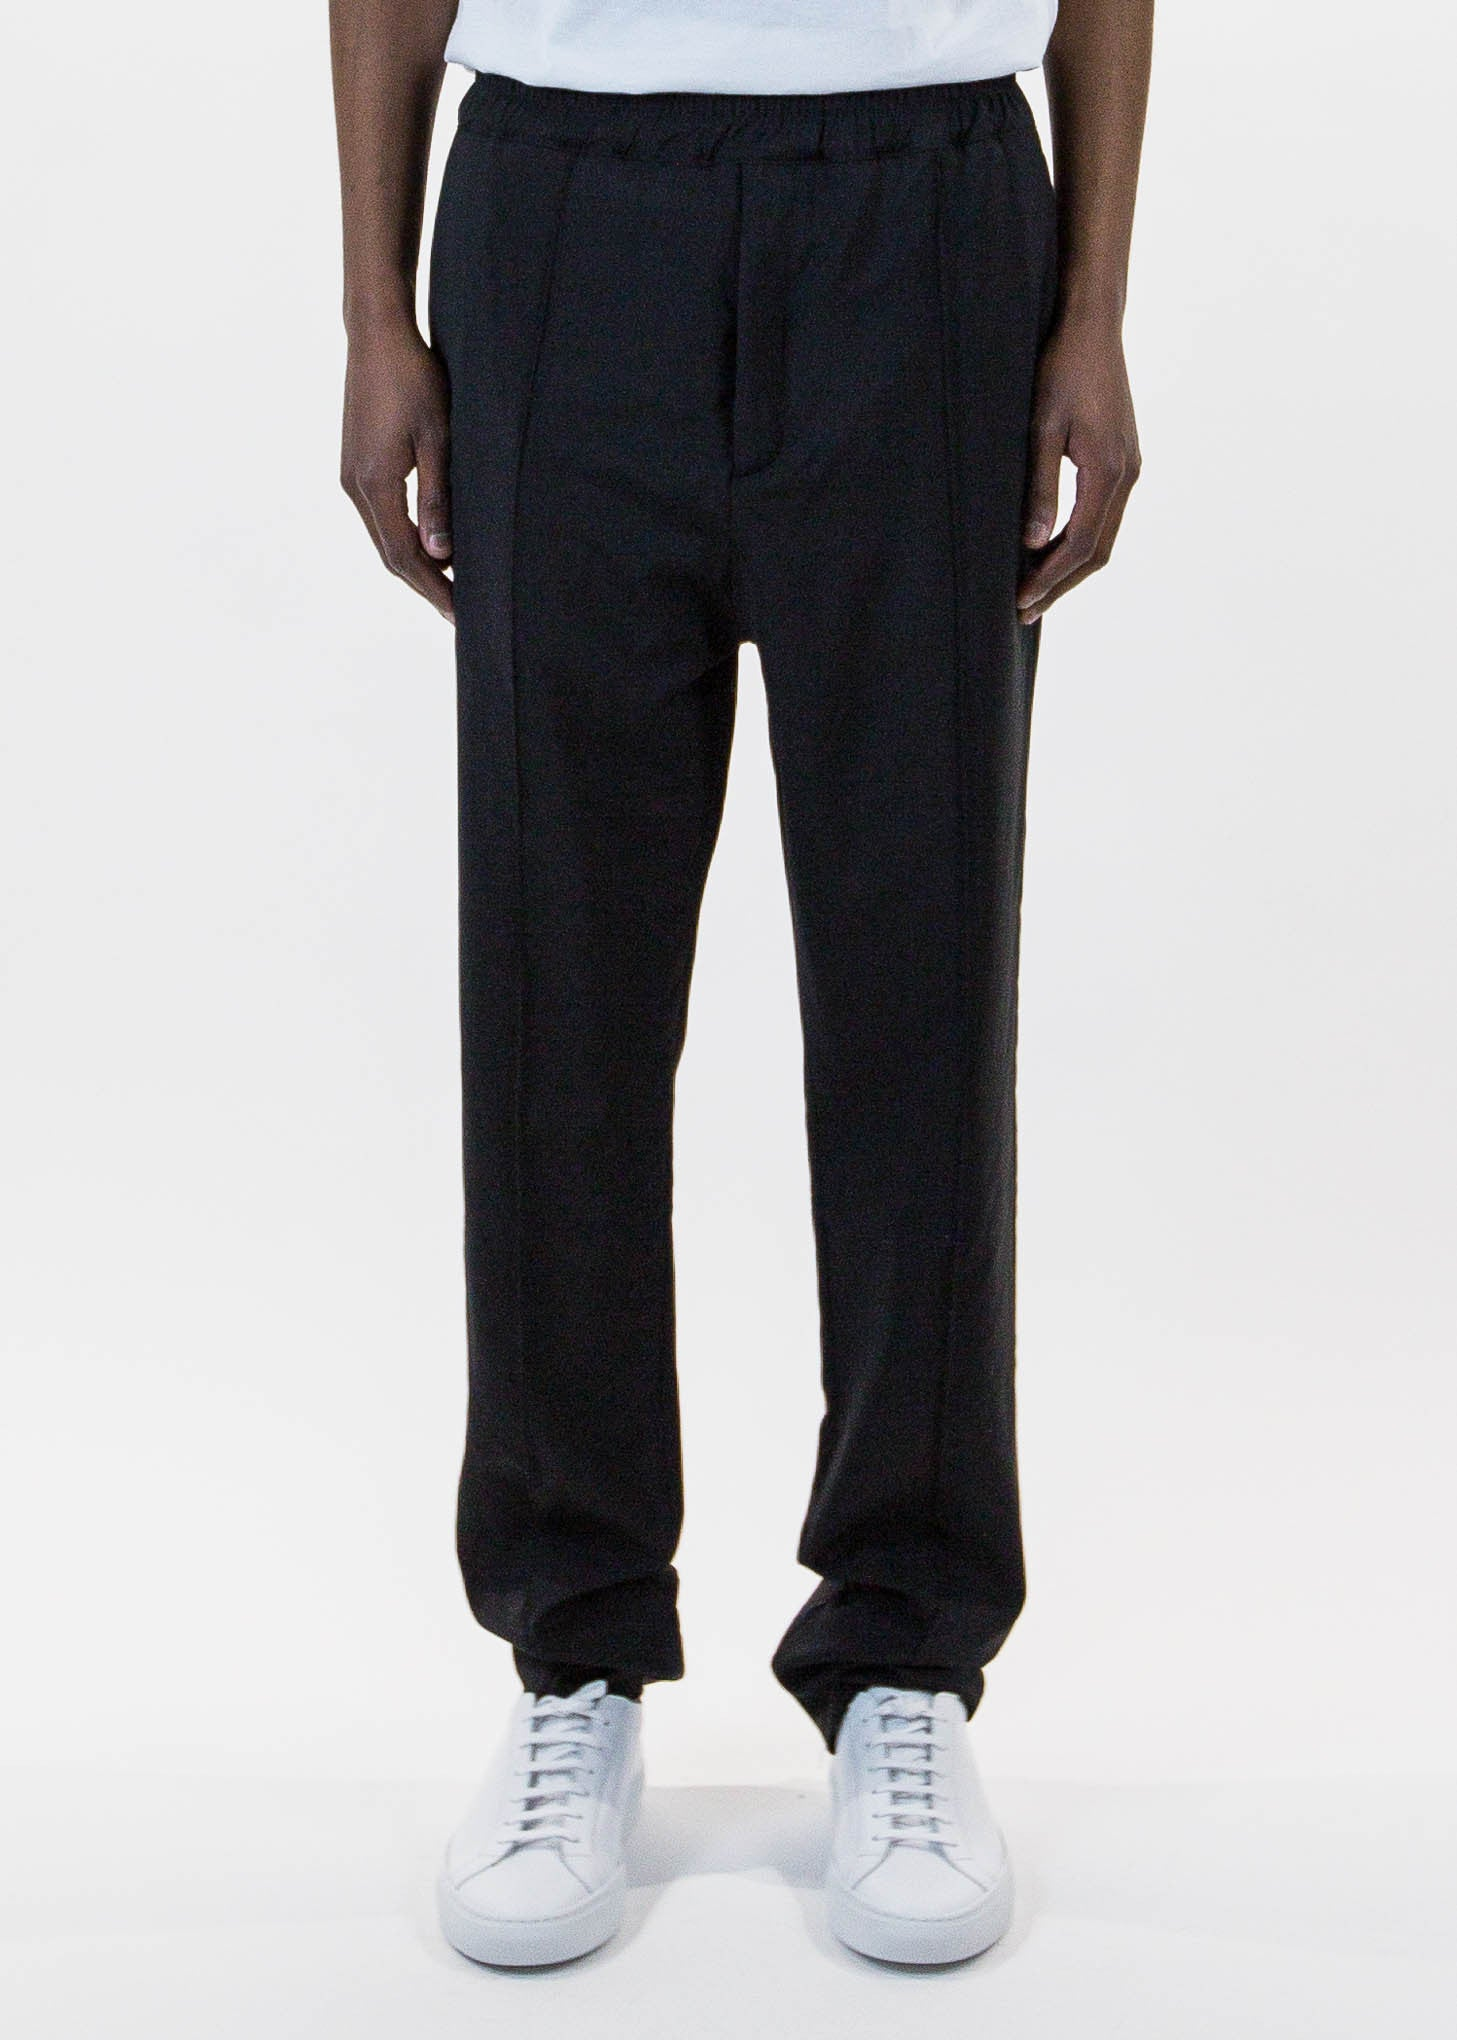 Black Rapture Trousers